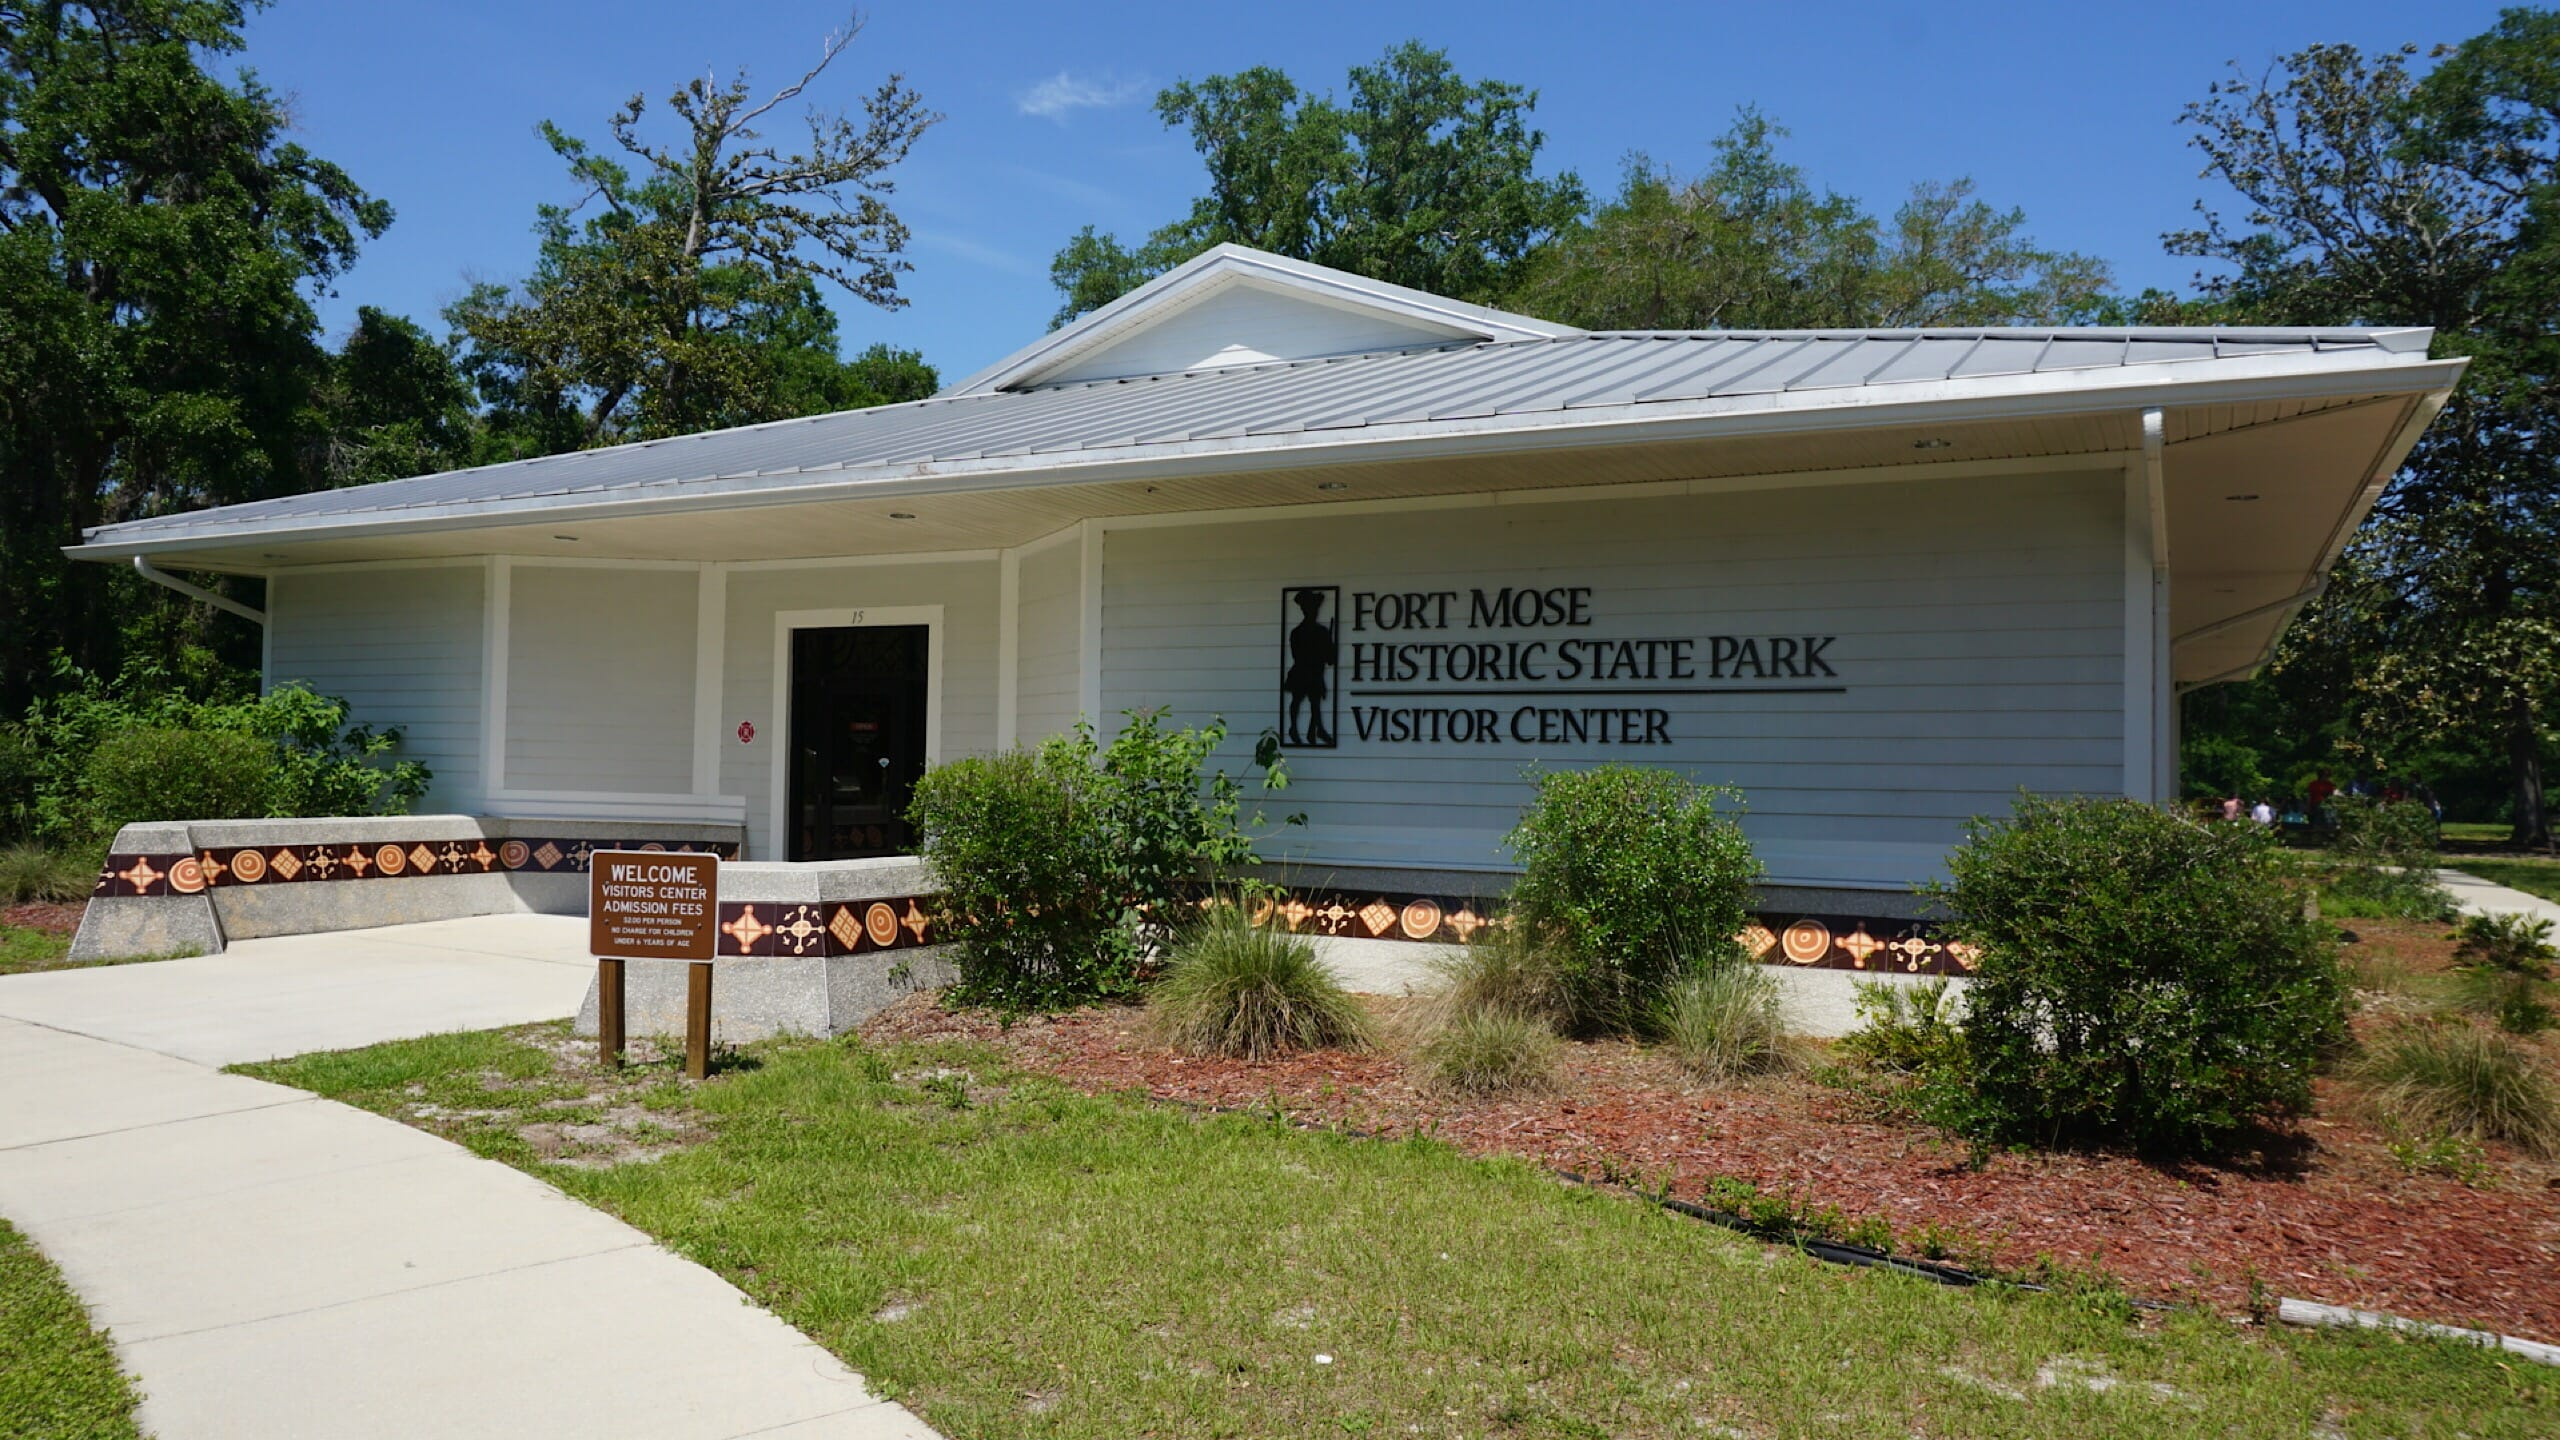 Fort Mose Visitor Center